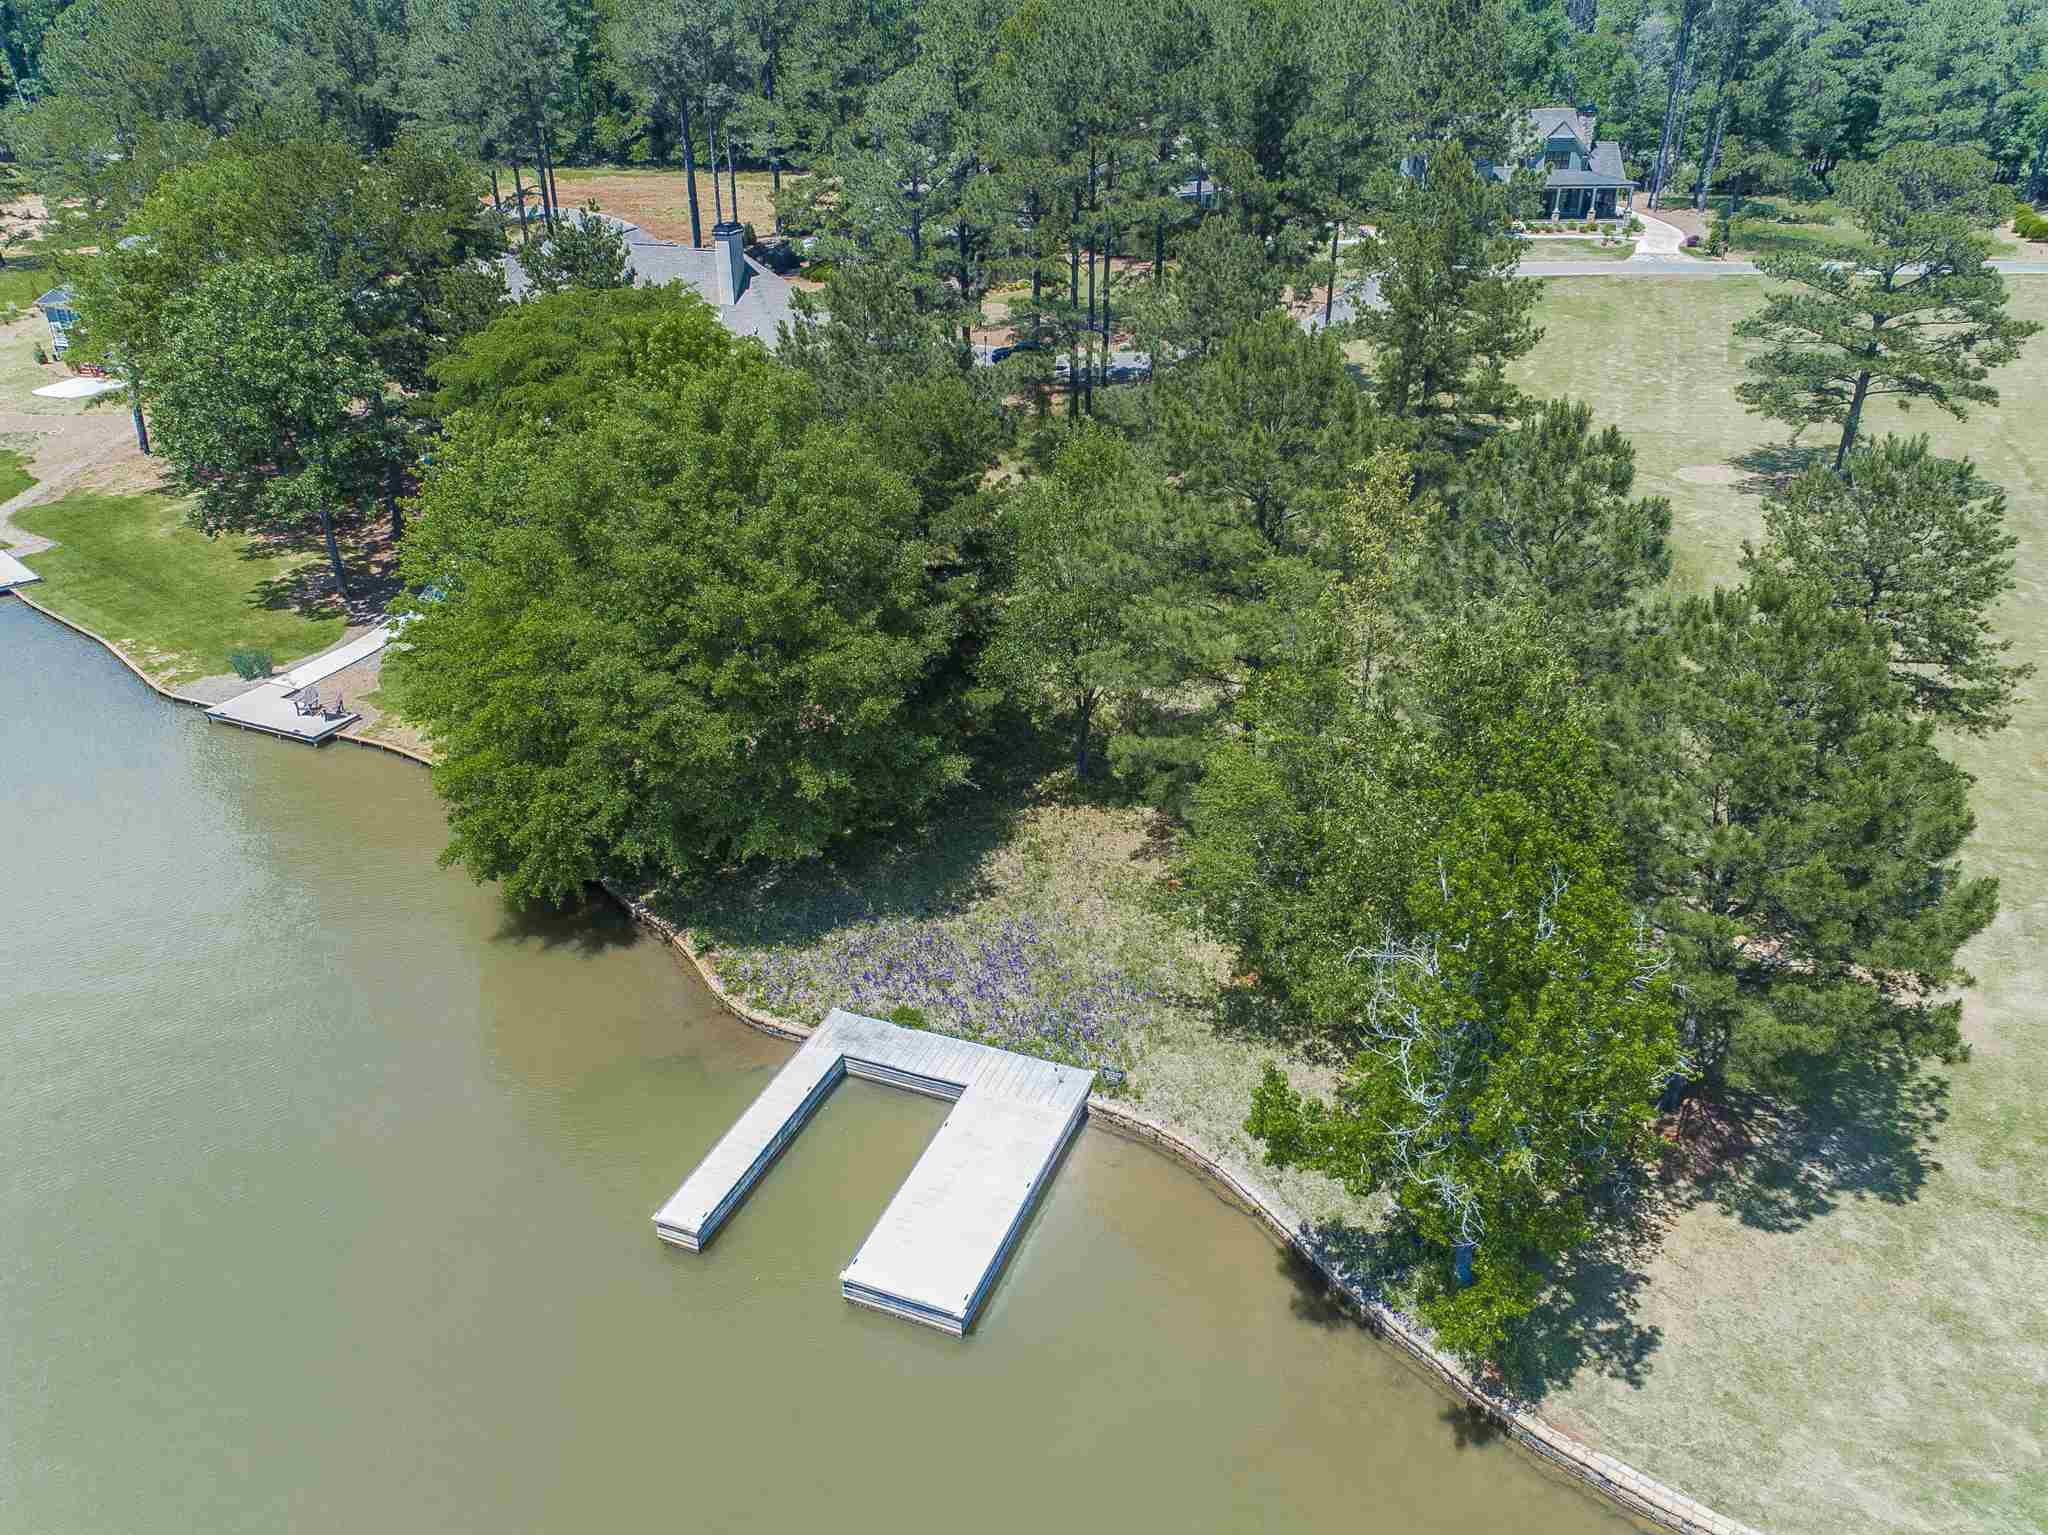 Lot 5 HAWKS RIDGE AS, one of homes for sale in Lake Sinclair